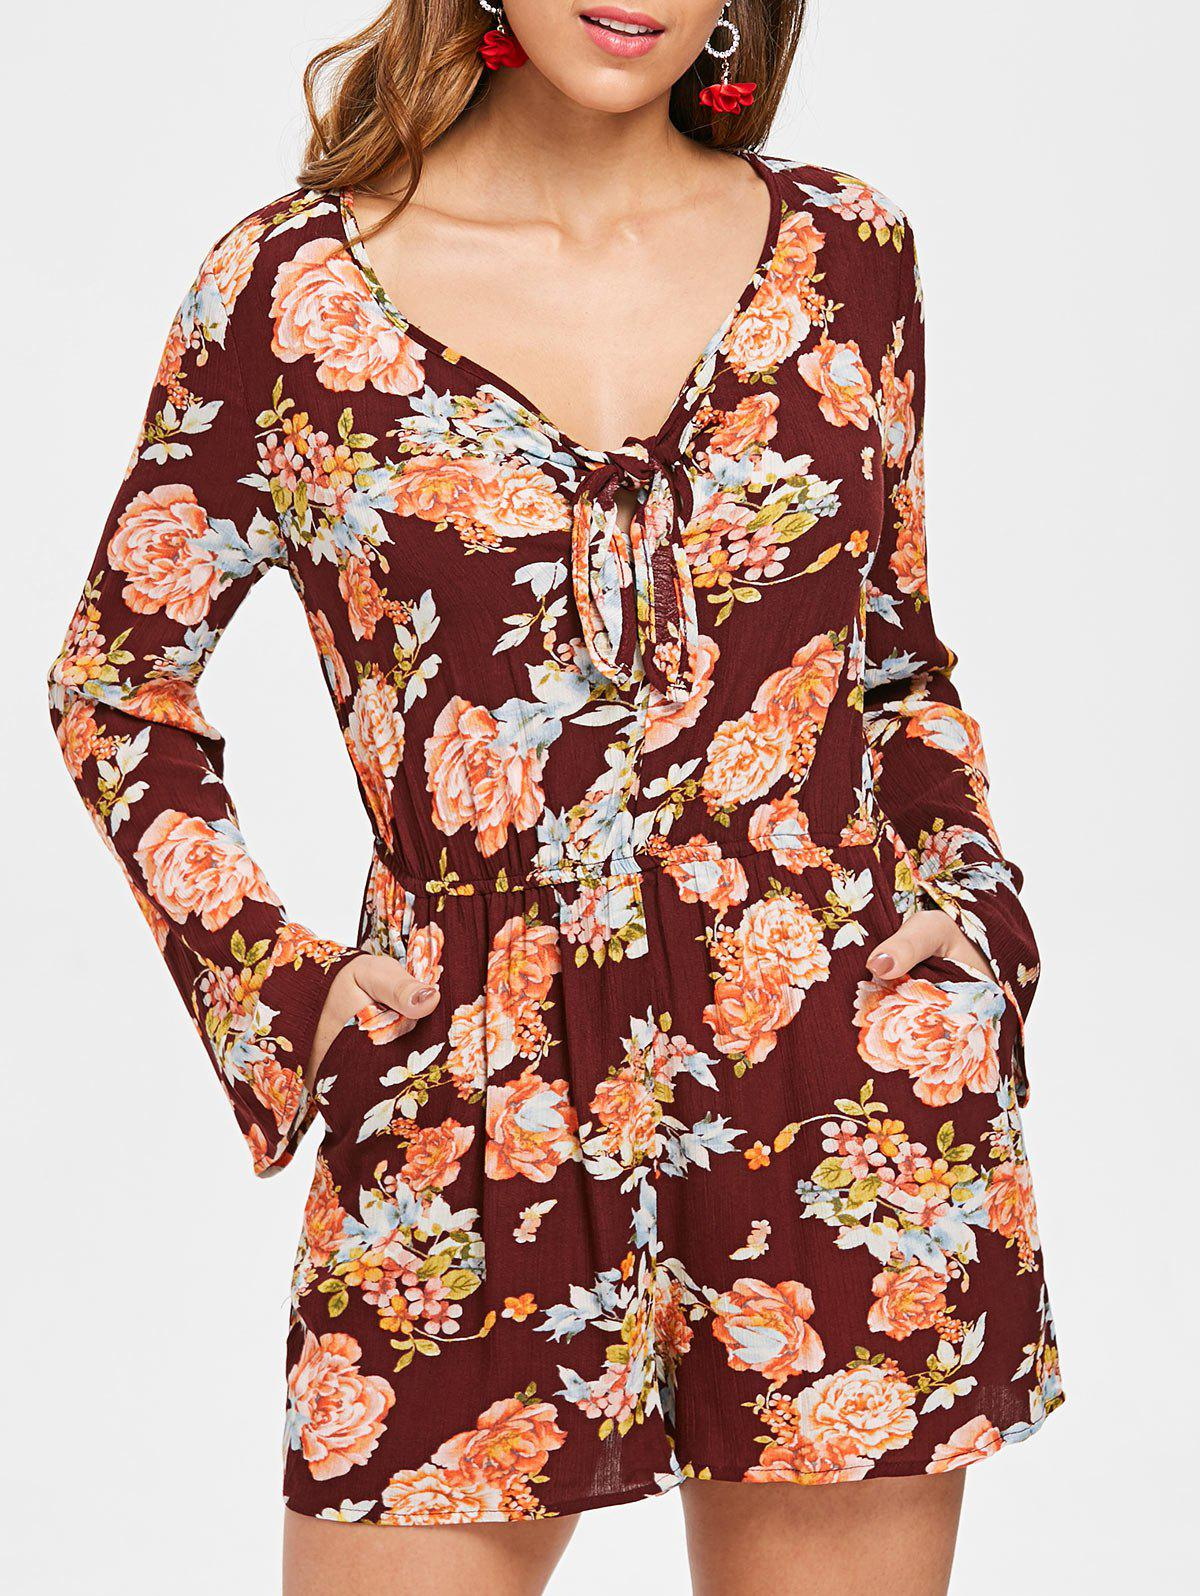 Fancy Floral Print Long Sleeve Romper